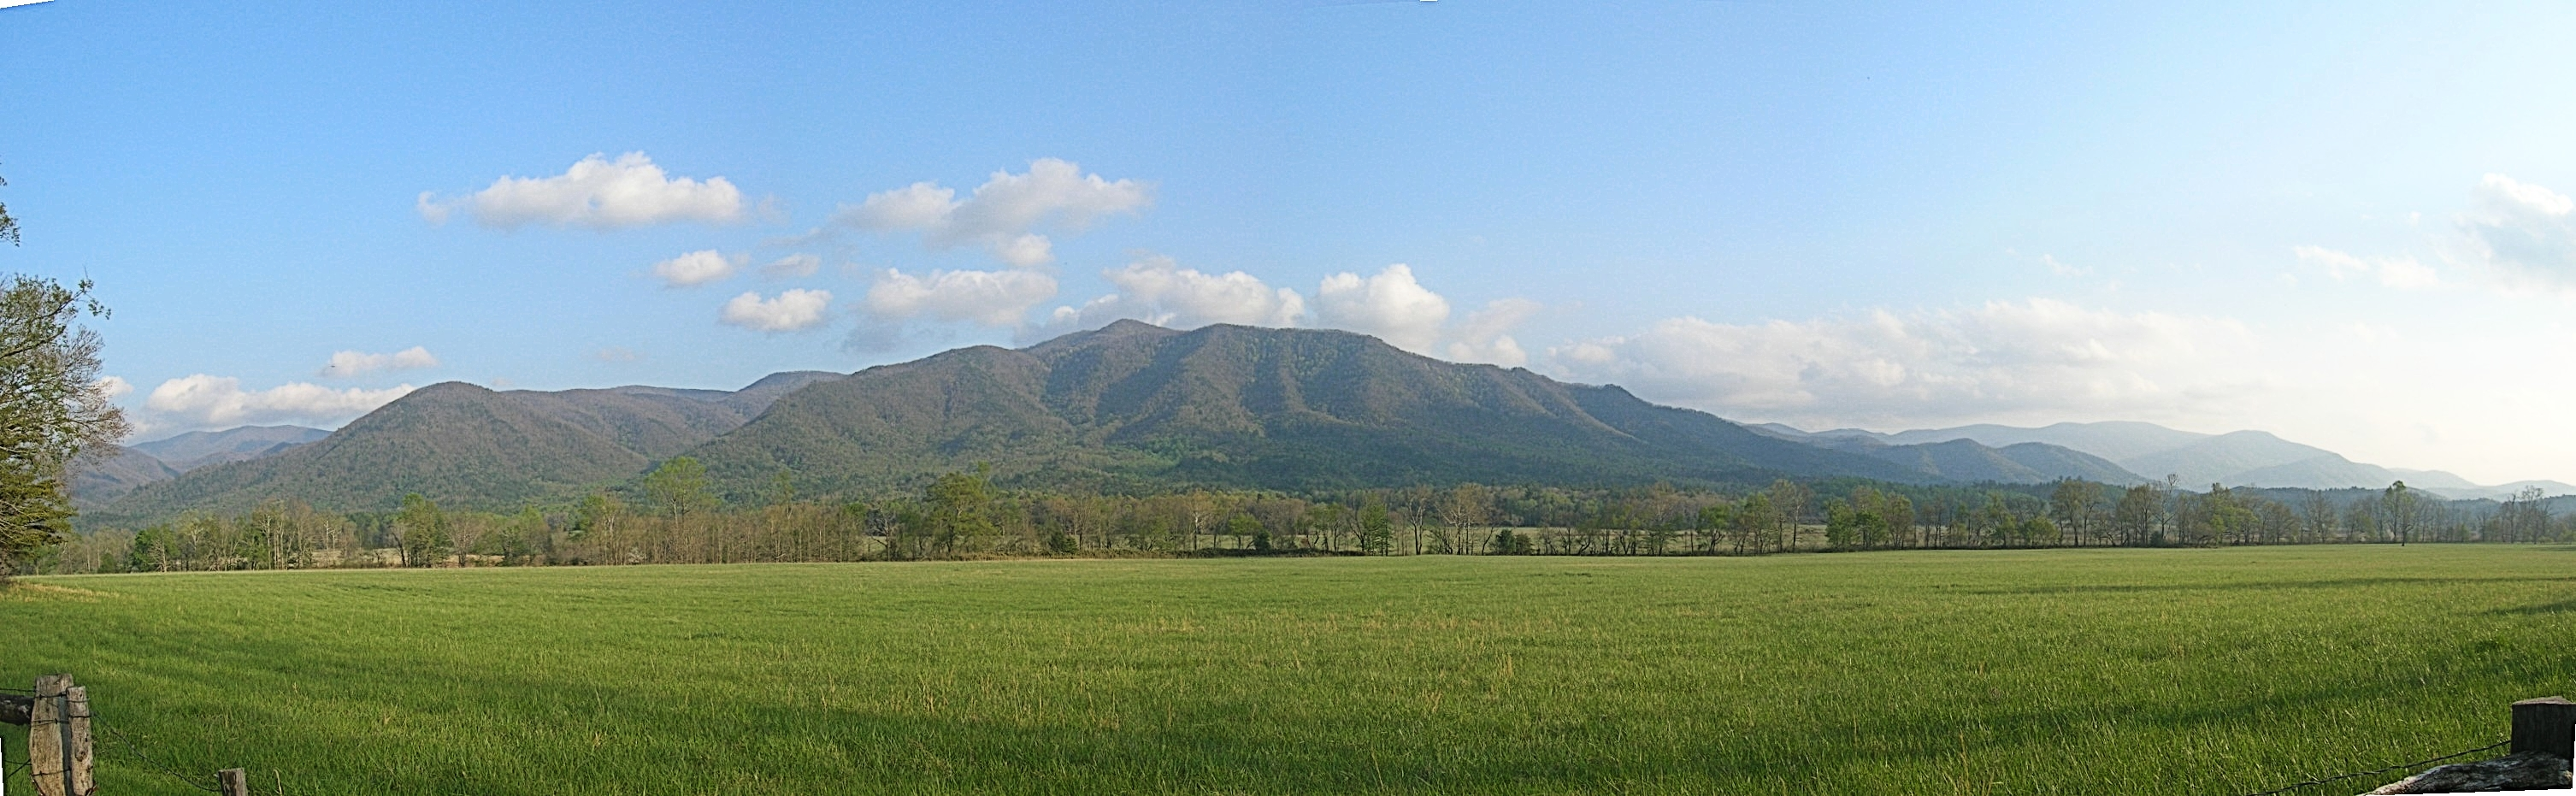 The scenic mountain valley setting of Cade's Cove makes it a popular destination for tourists in the w:Great Smoky Mountains. Photo taken by Anthony Chavez in August 2010.